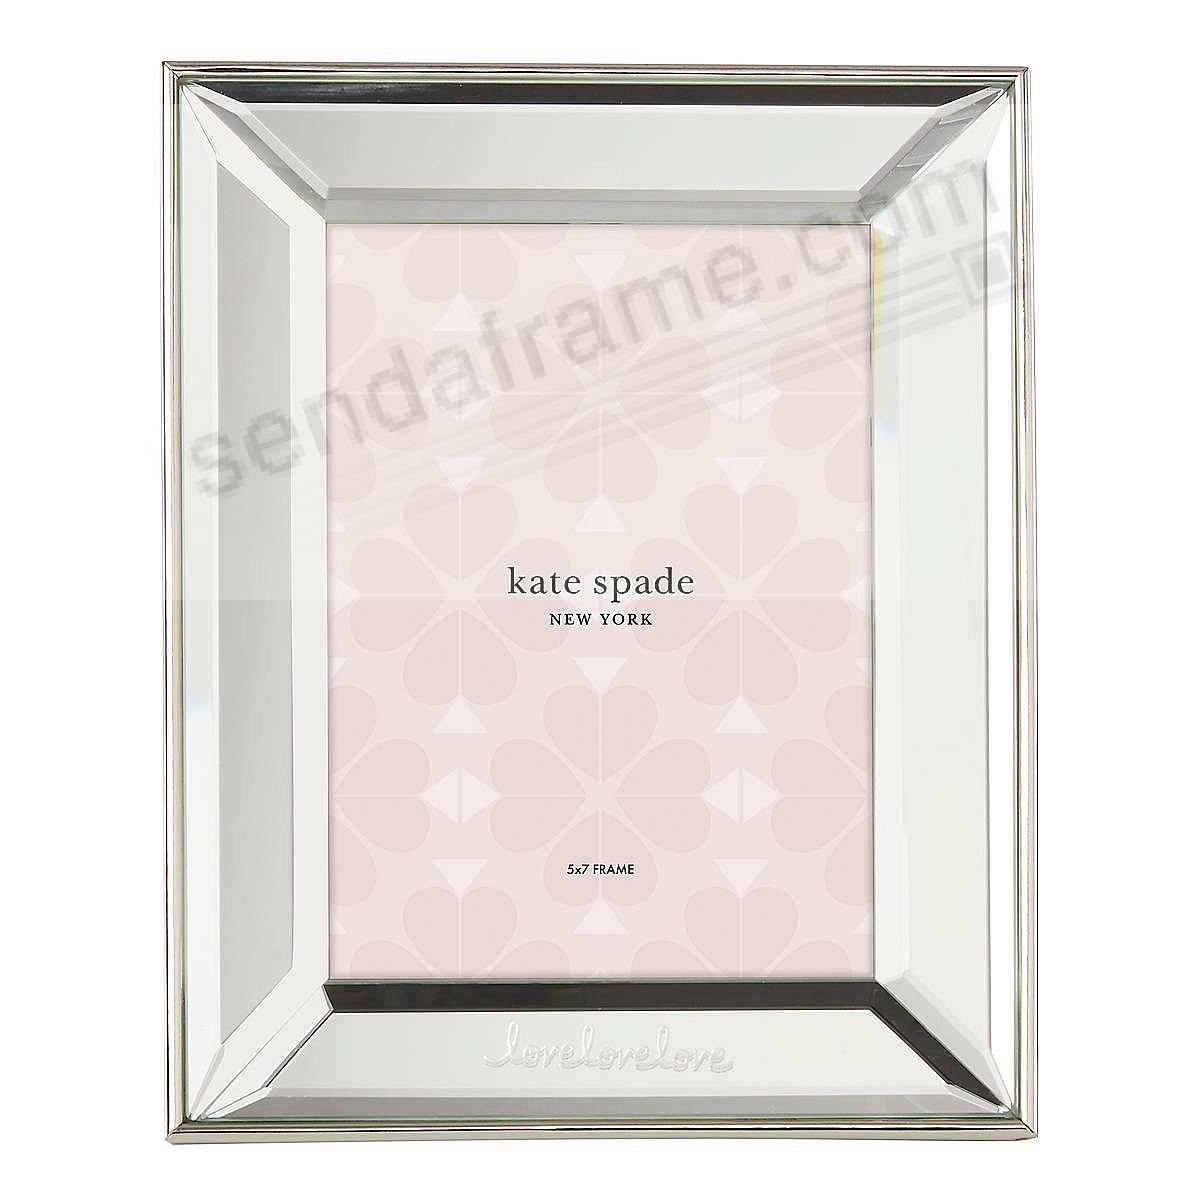 LOVE LOVE LOVE 5x7 frame by kate spade new york®